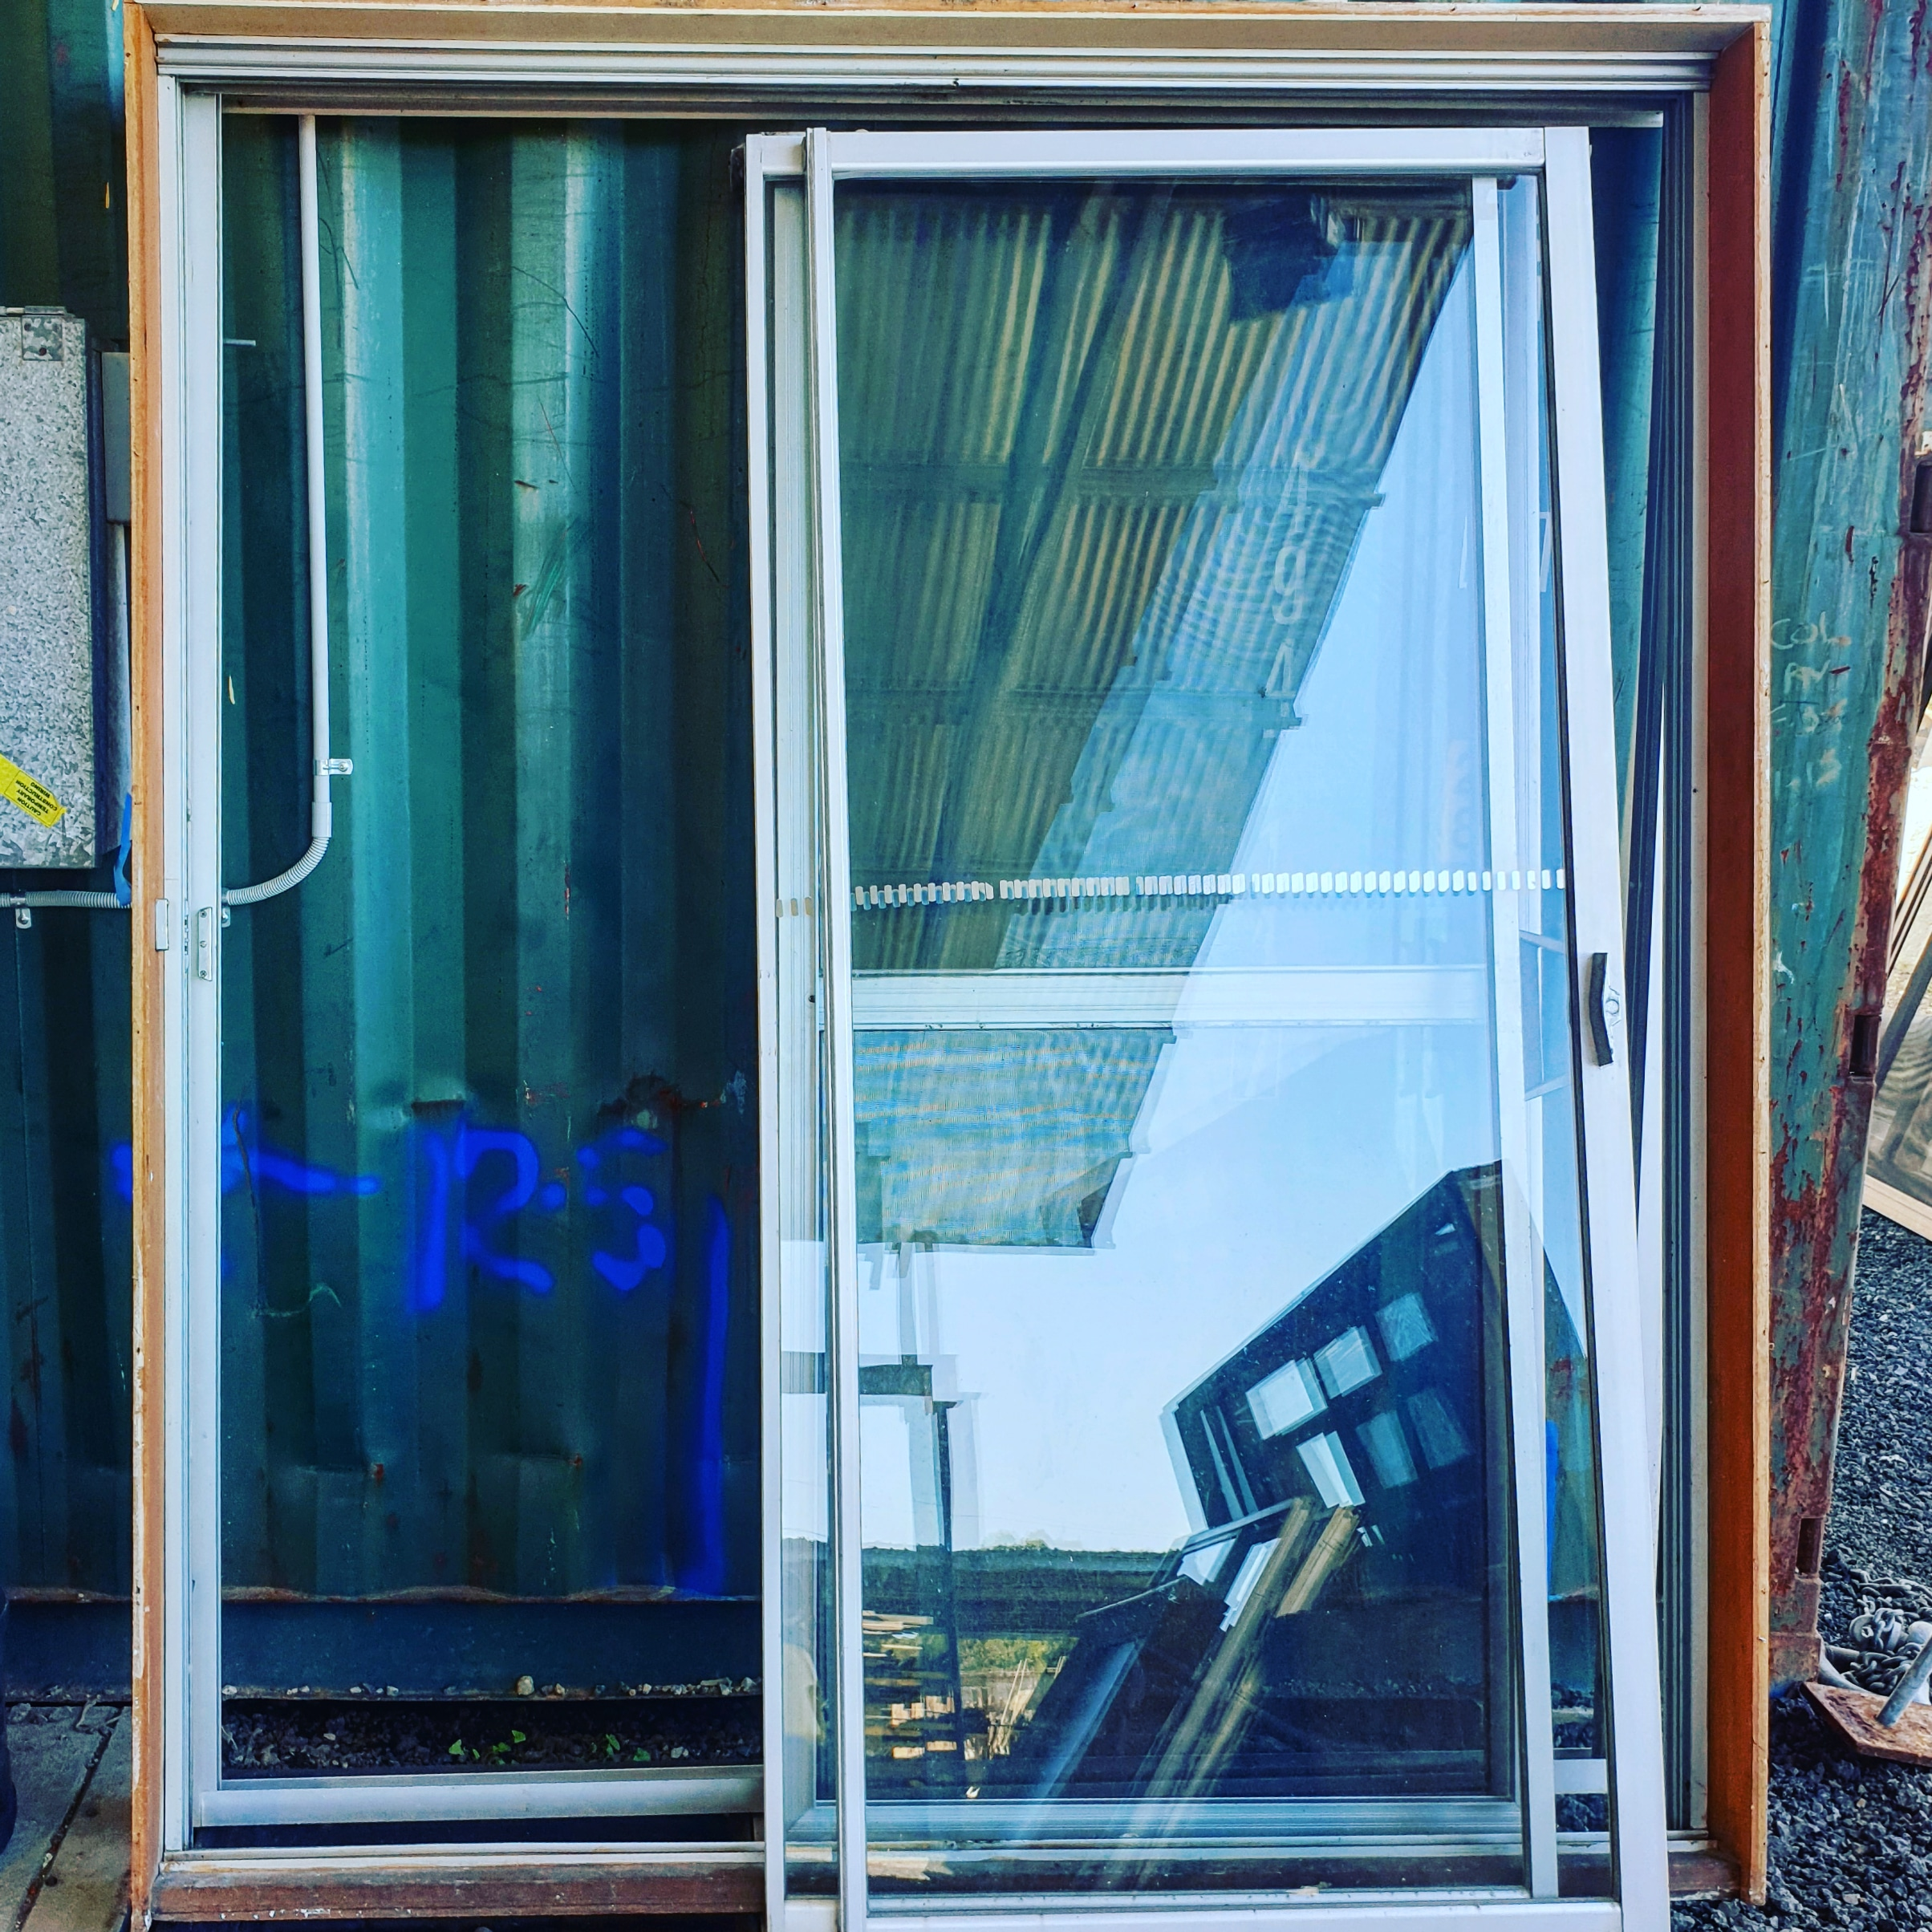 SILVER - 1830w x 2100h - With Reveal - With Fly Screen Door (damaged) - $150 SILVER - 1830w x 2090h - No Reveal - With Fly Screen Door (damaged) - $50 SILVER - 1850w x 2100h - No Reveal - With Security Door (with Doggy Door) - $250